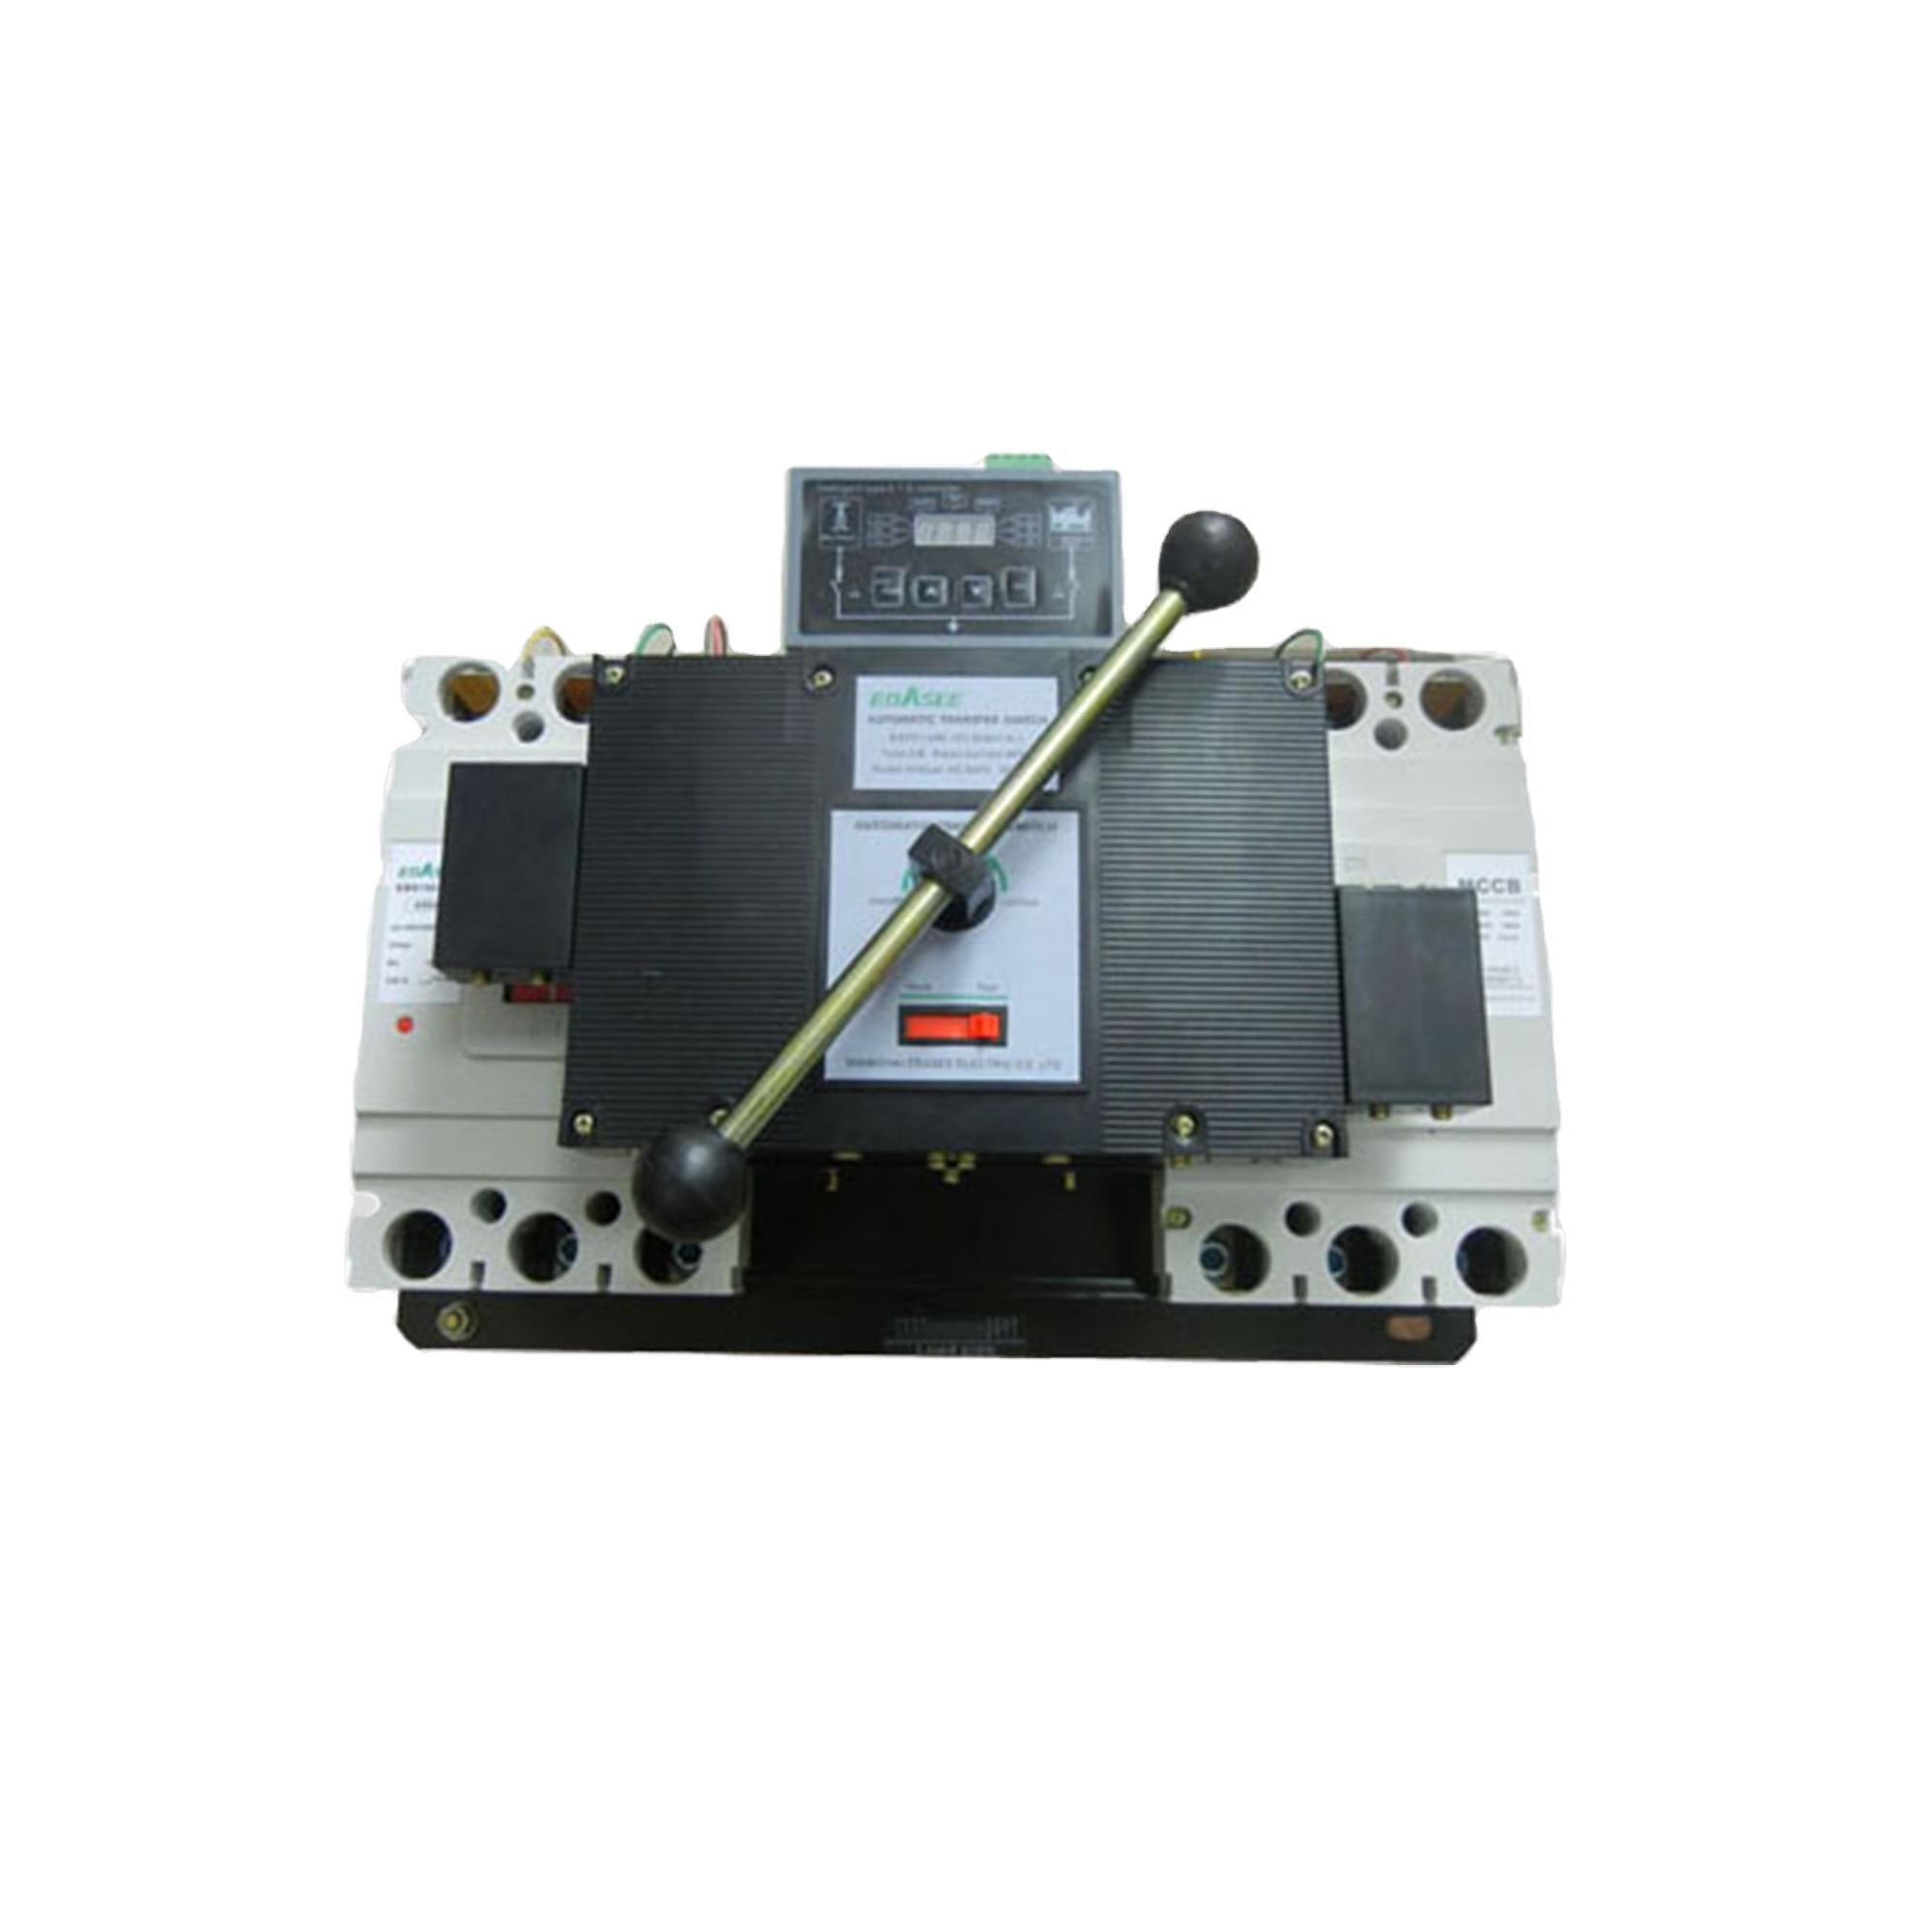 3 phase electrical circuit 63A, 100A, 225A, 400A, 630A, 800A, 1250A 440V AC 50Hz automatic transfer switch for generator